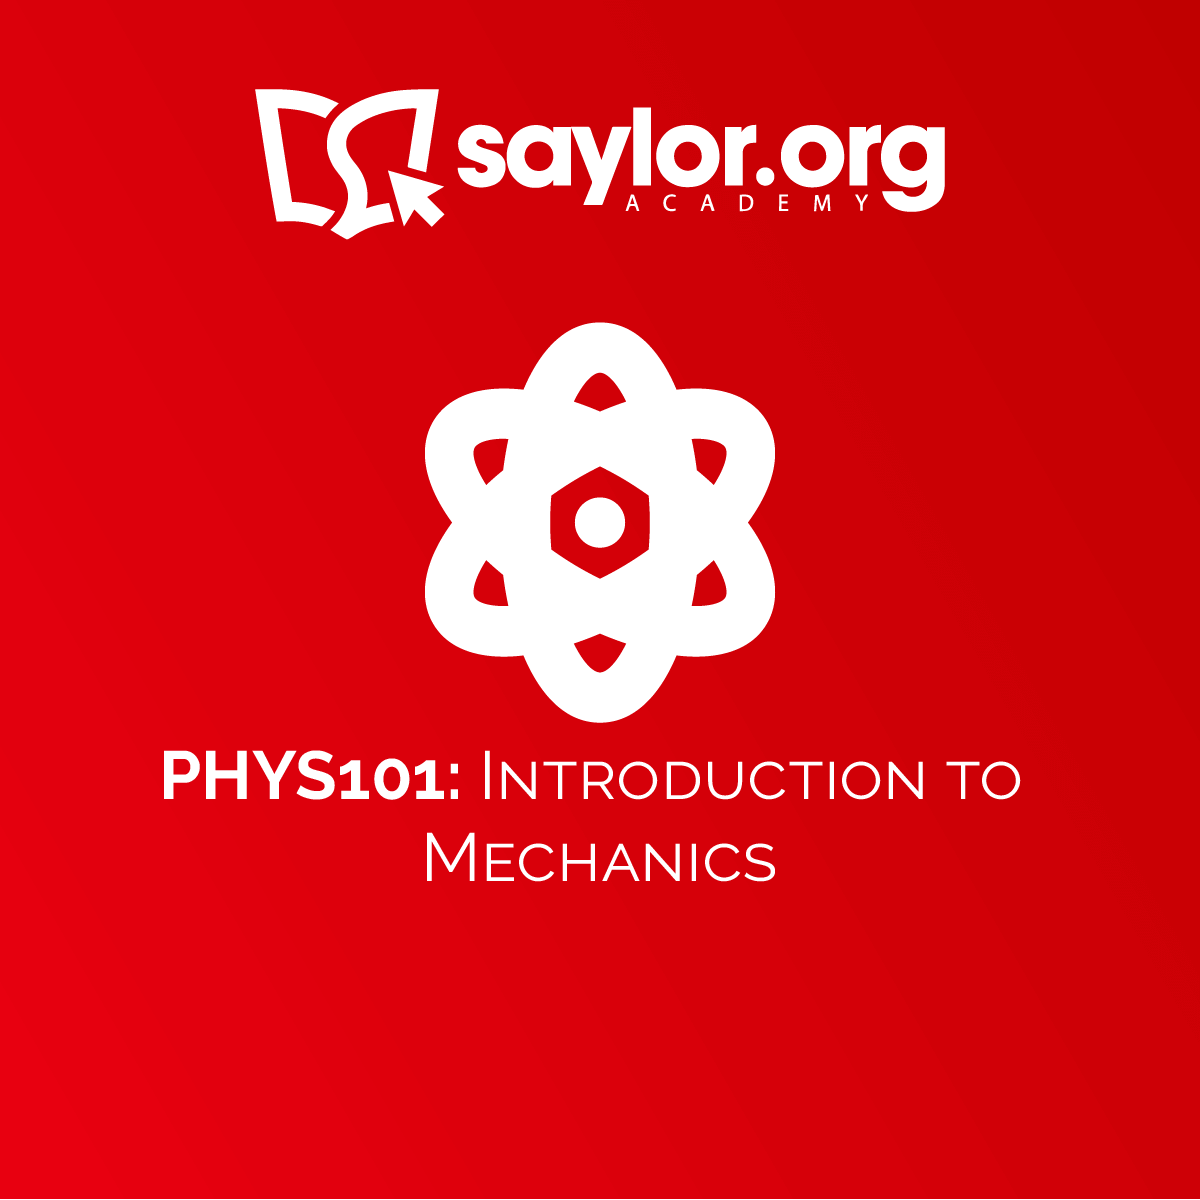 PHYS101: Introduction to Mechanics, Topic: Unit 9: Angular